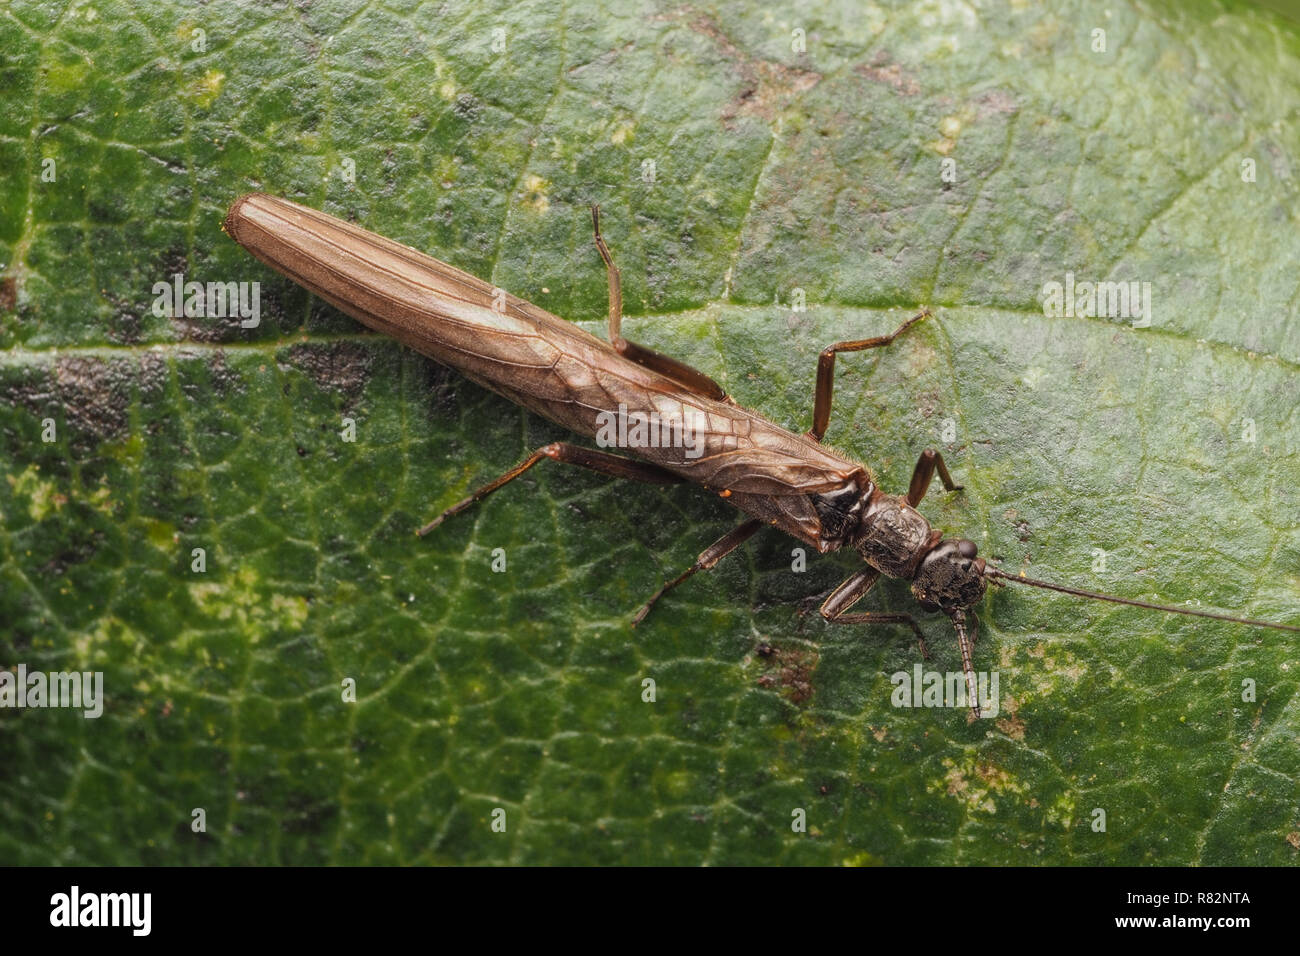 Dorsal view of Stonefly (Leuctra fusca) at rest on leaf. Tipperary, Ireland - Stock Image